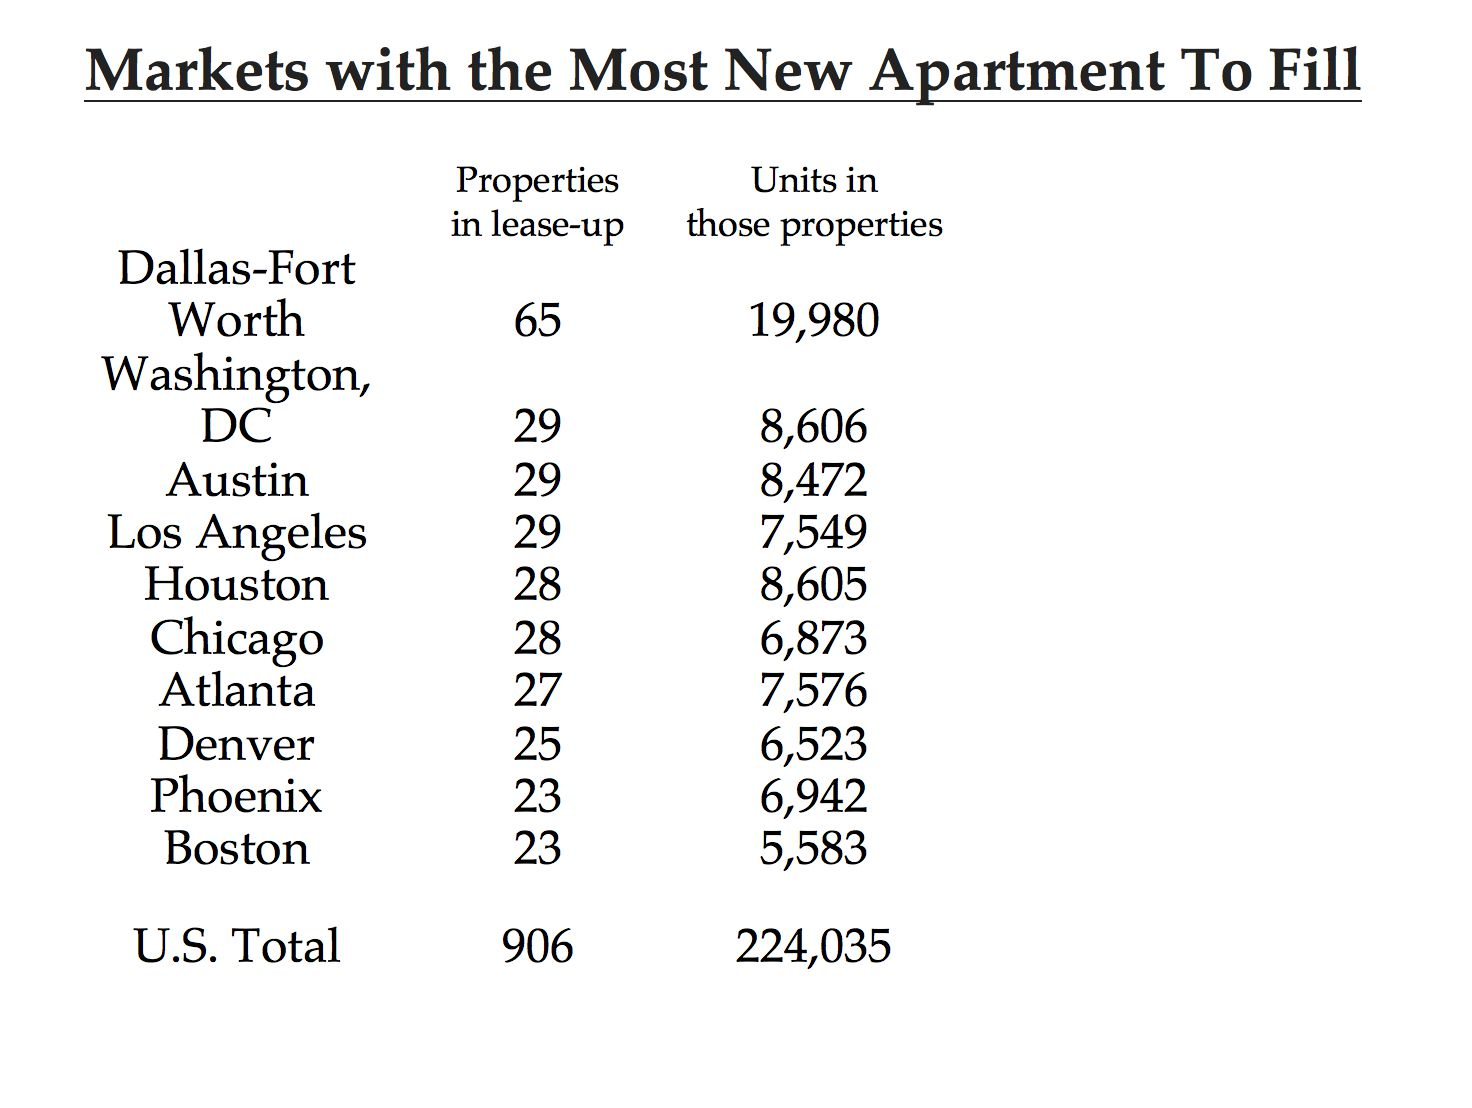 D-FW has twice as many new units to fill as other comparable markets.